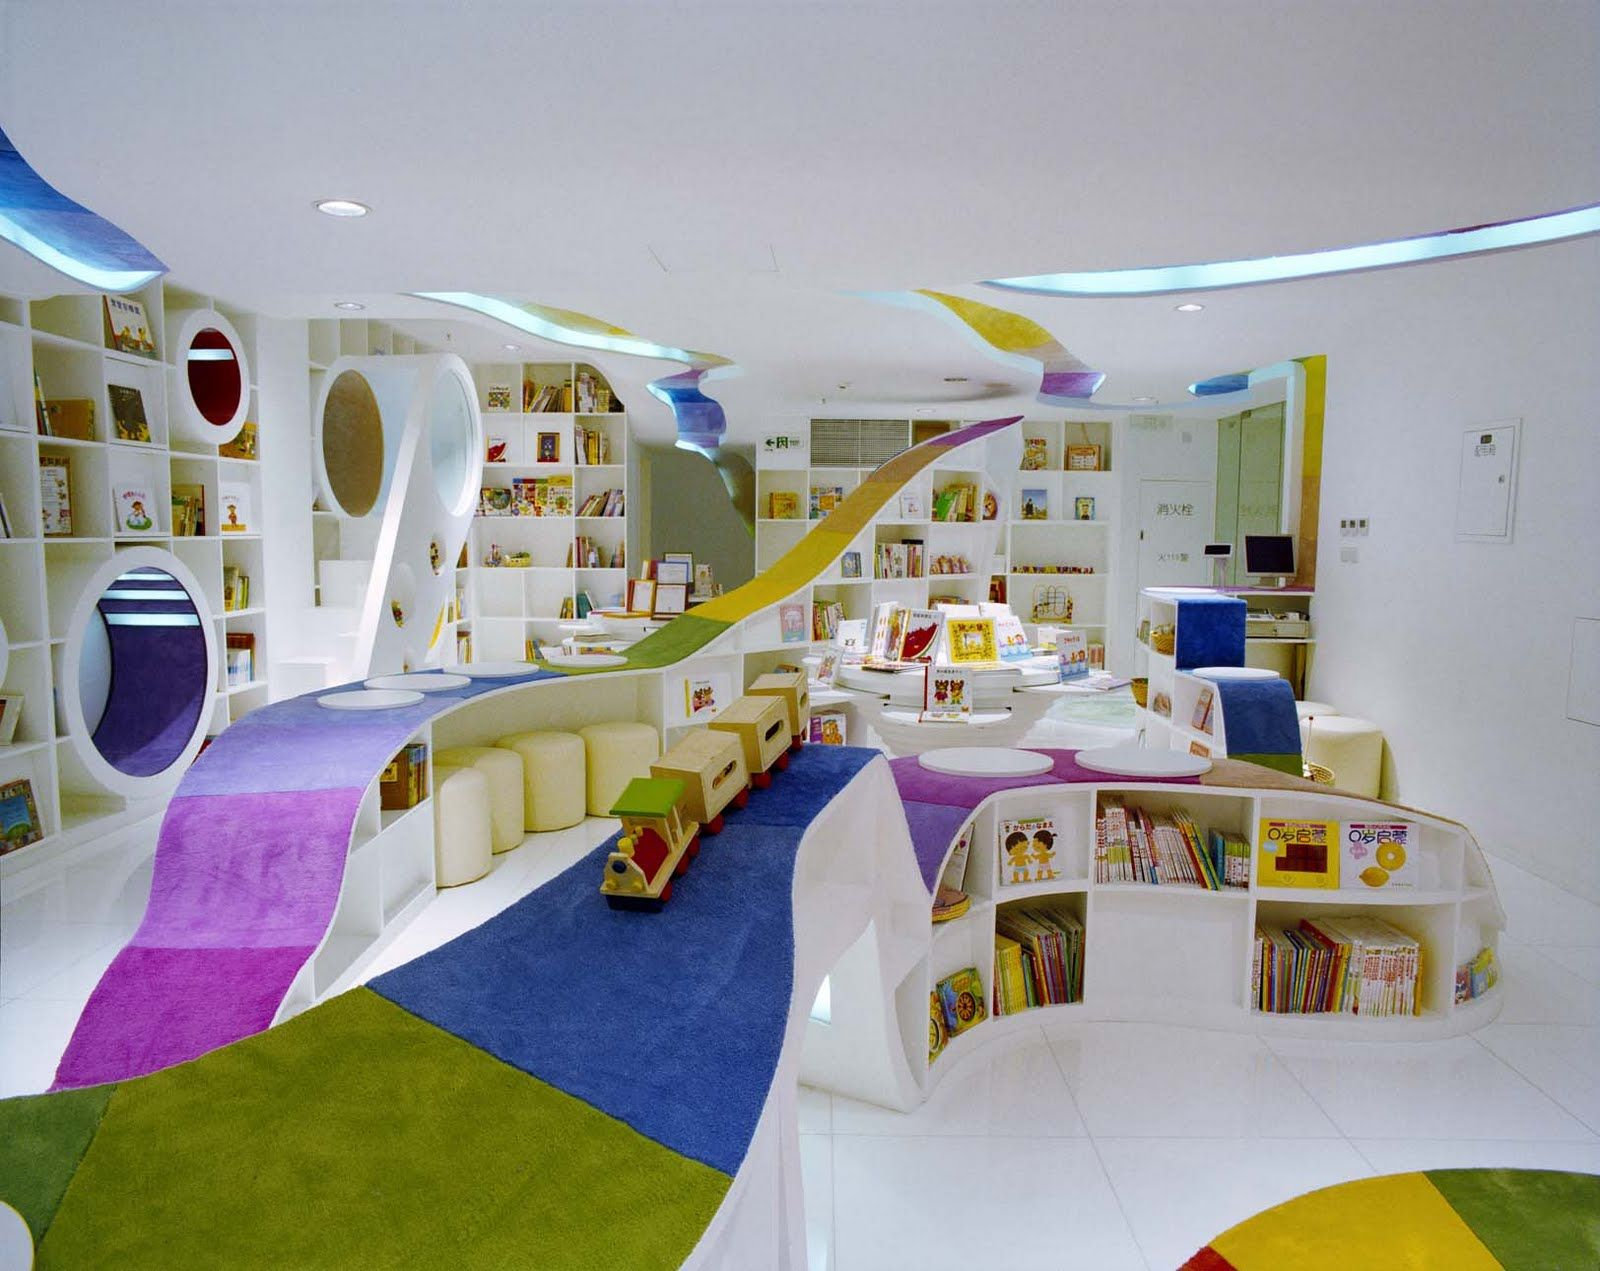 Architecture Design Kids library design | children's library | the go to design on